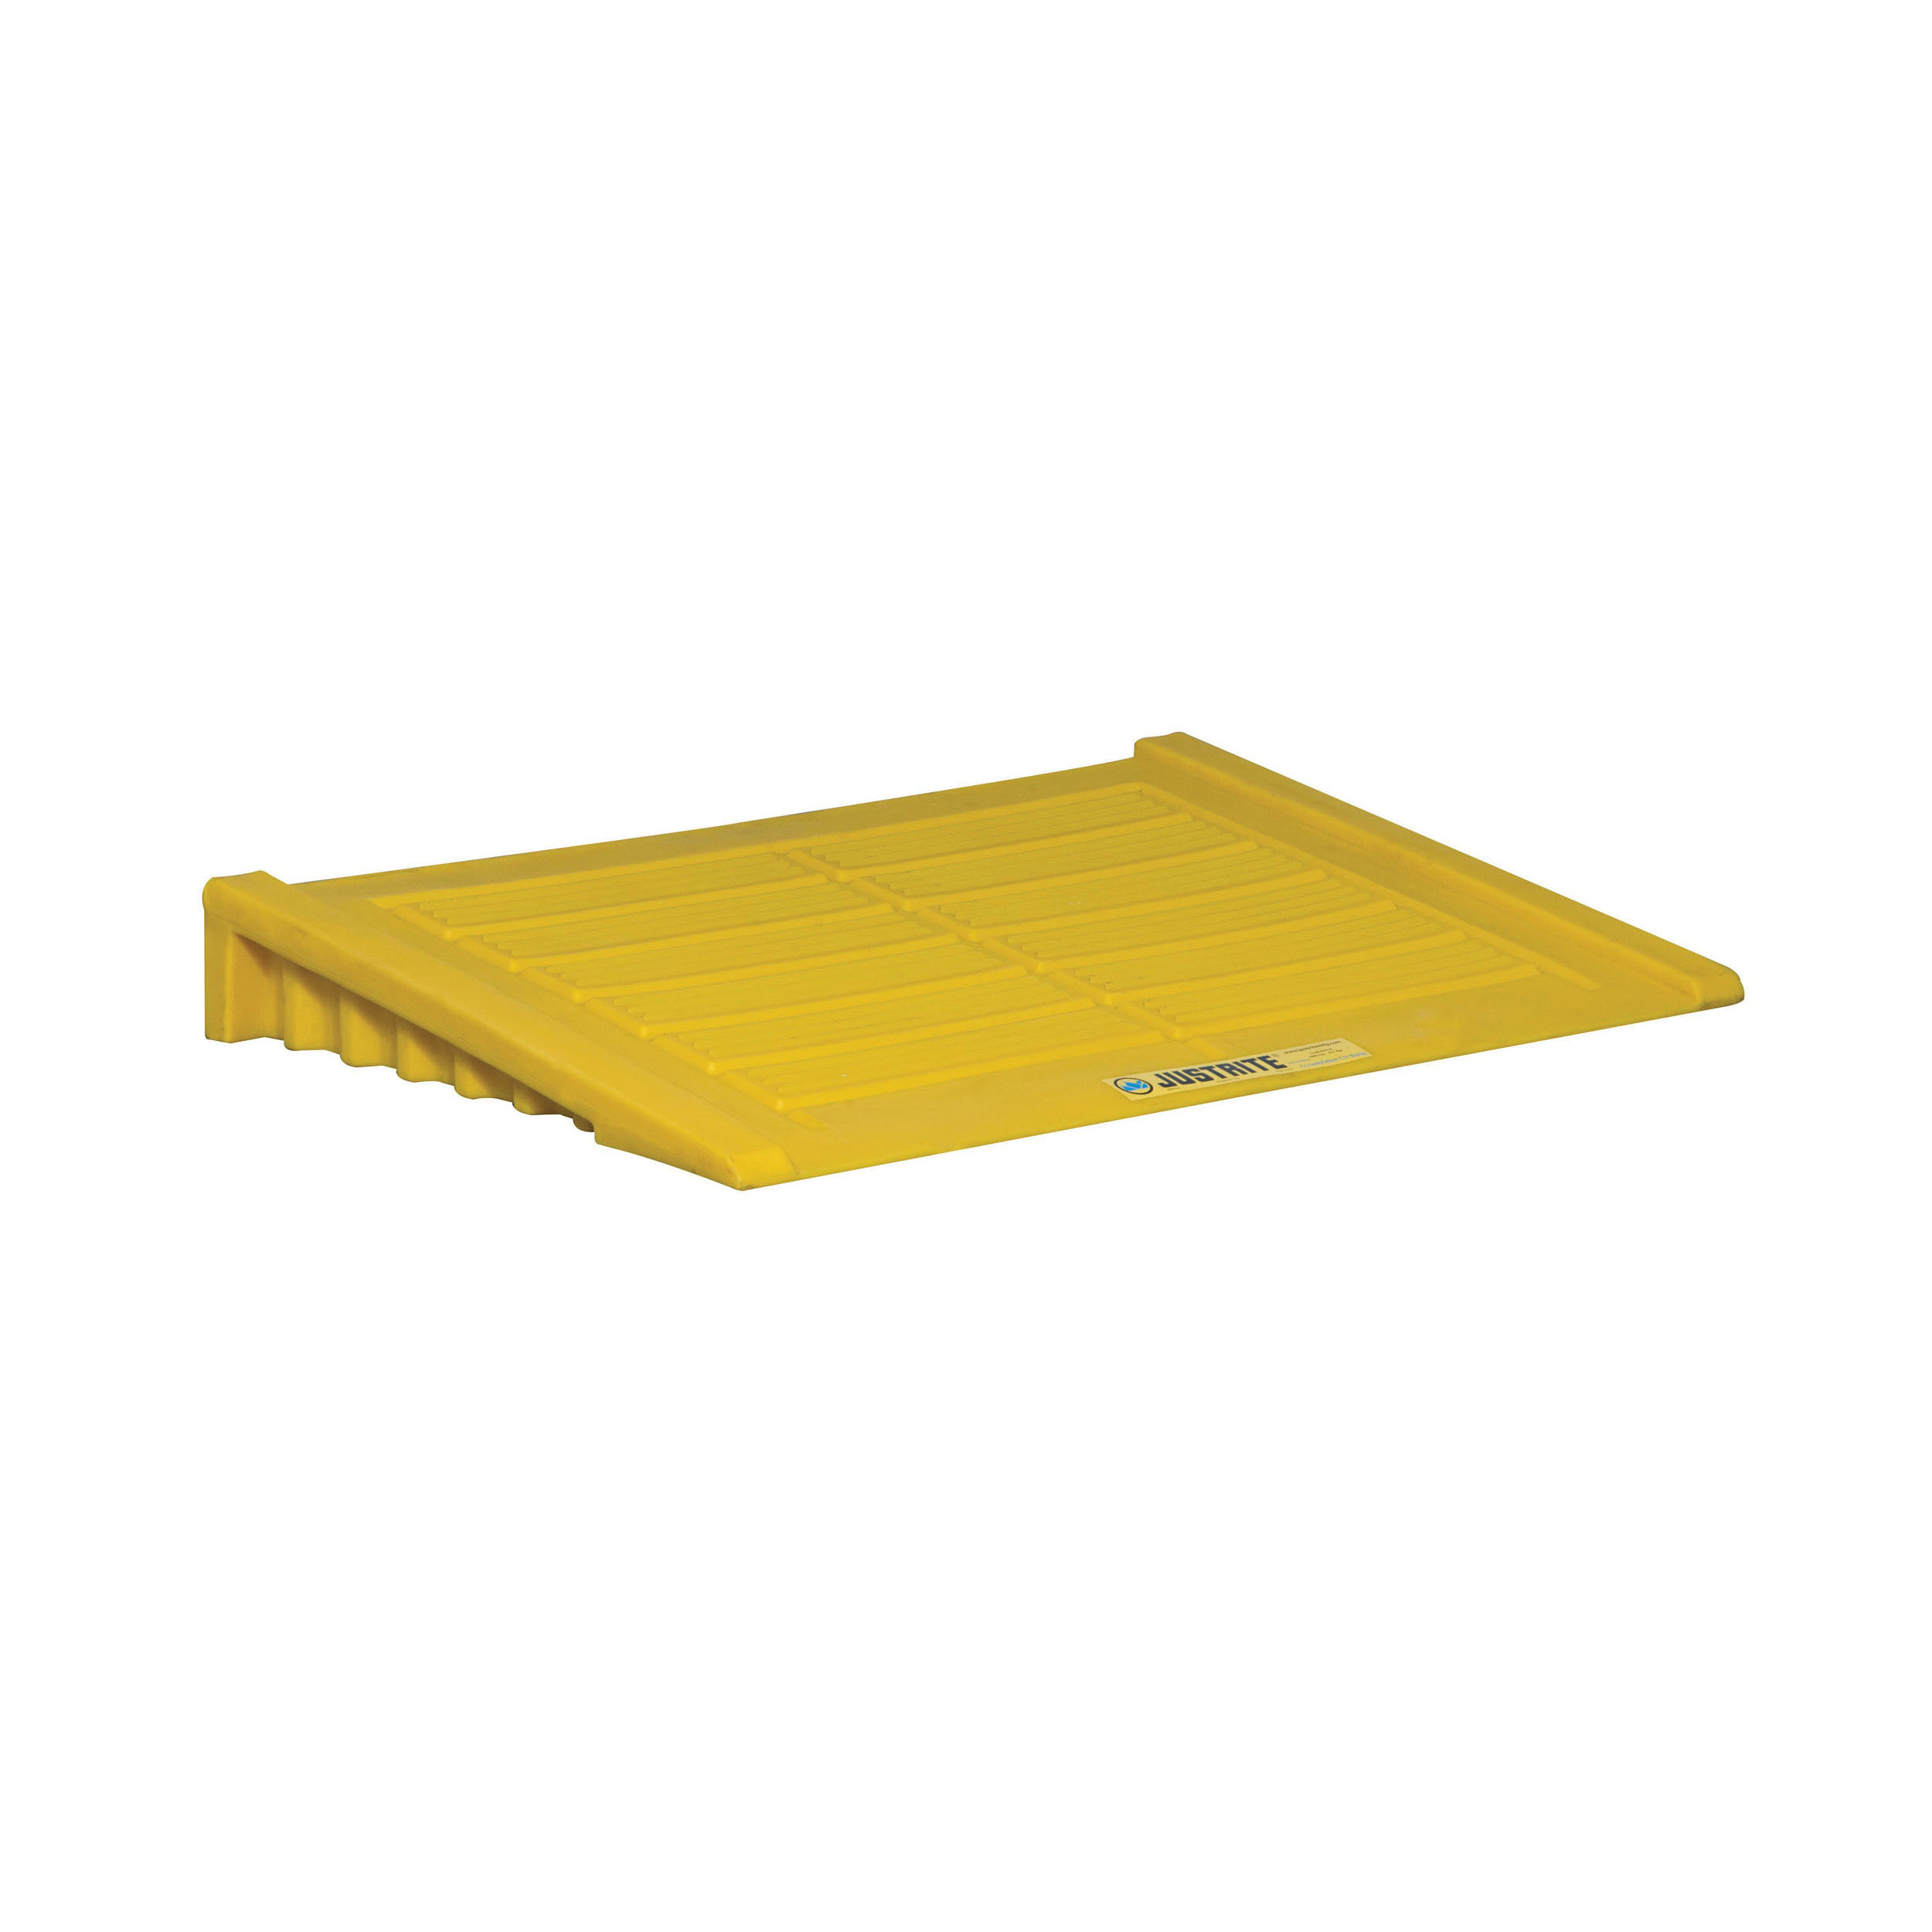 Justrite® 28650 Accumulation Center Ramp, 33 in L x 48 in W x 6-1/4 in H, 1000 lb Load, 45% Recycled Polyethylene